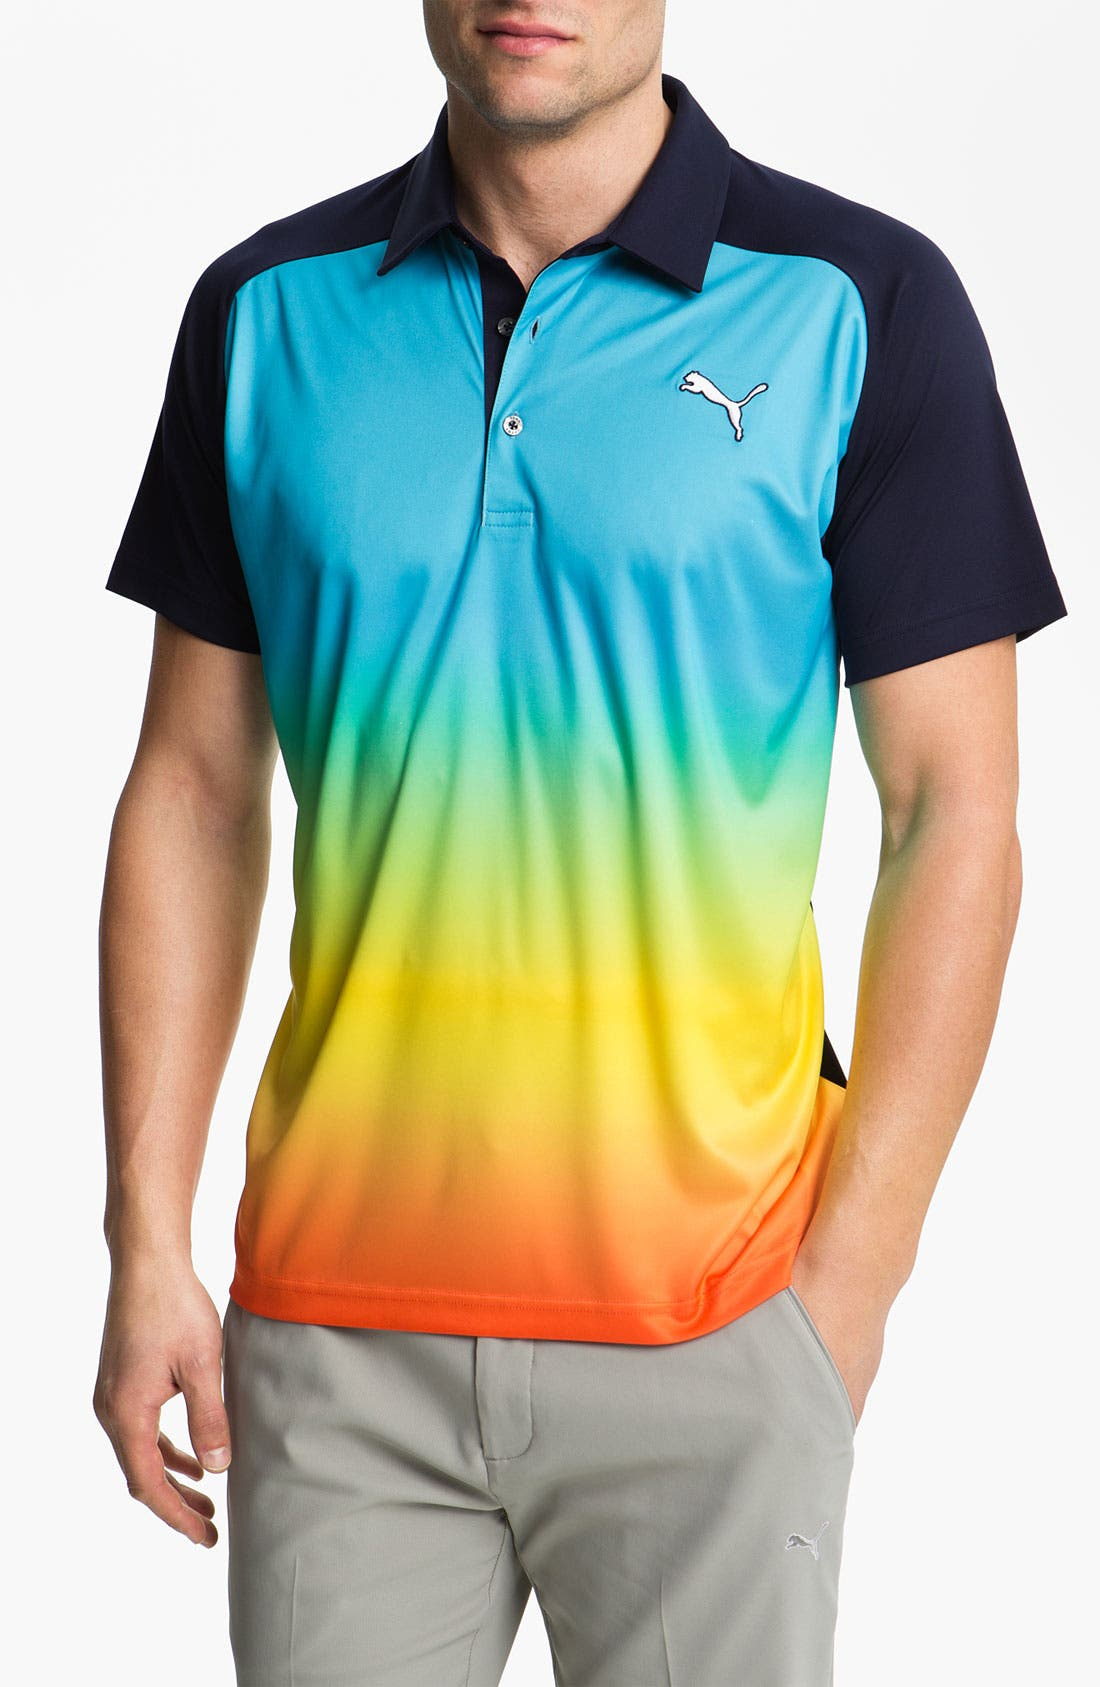 Alternate Image 1 Selected - PUMA GOLF 'Ombré' dryCELL™ Tech Polo